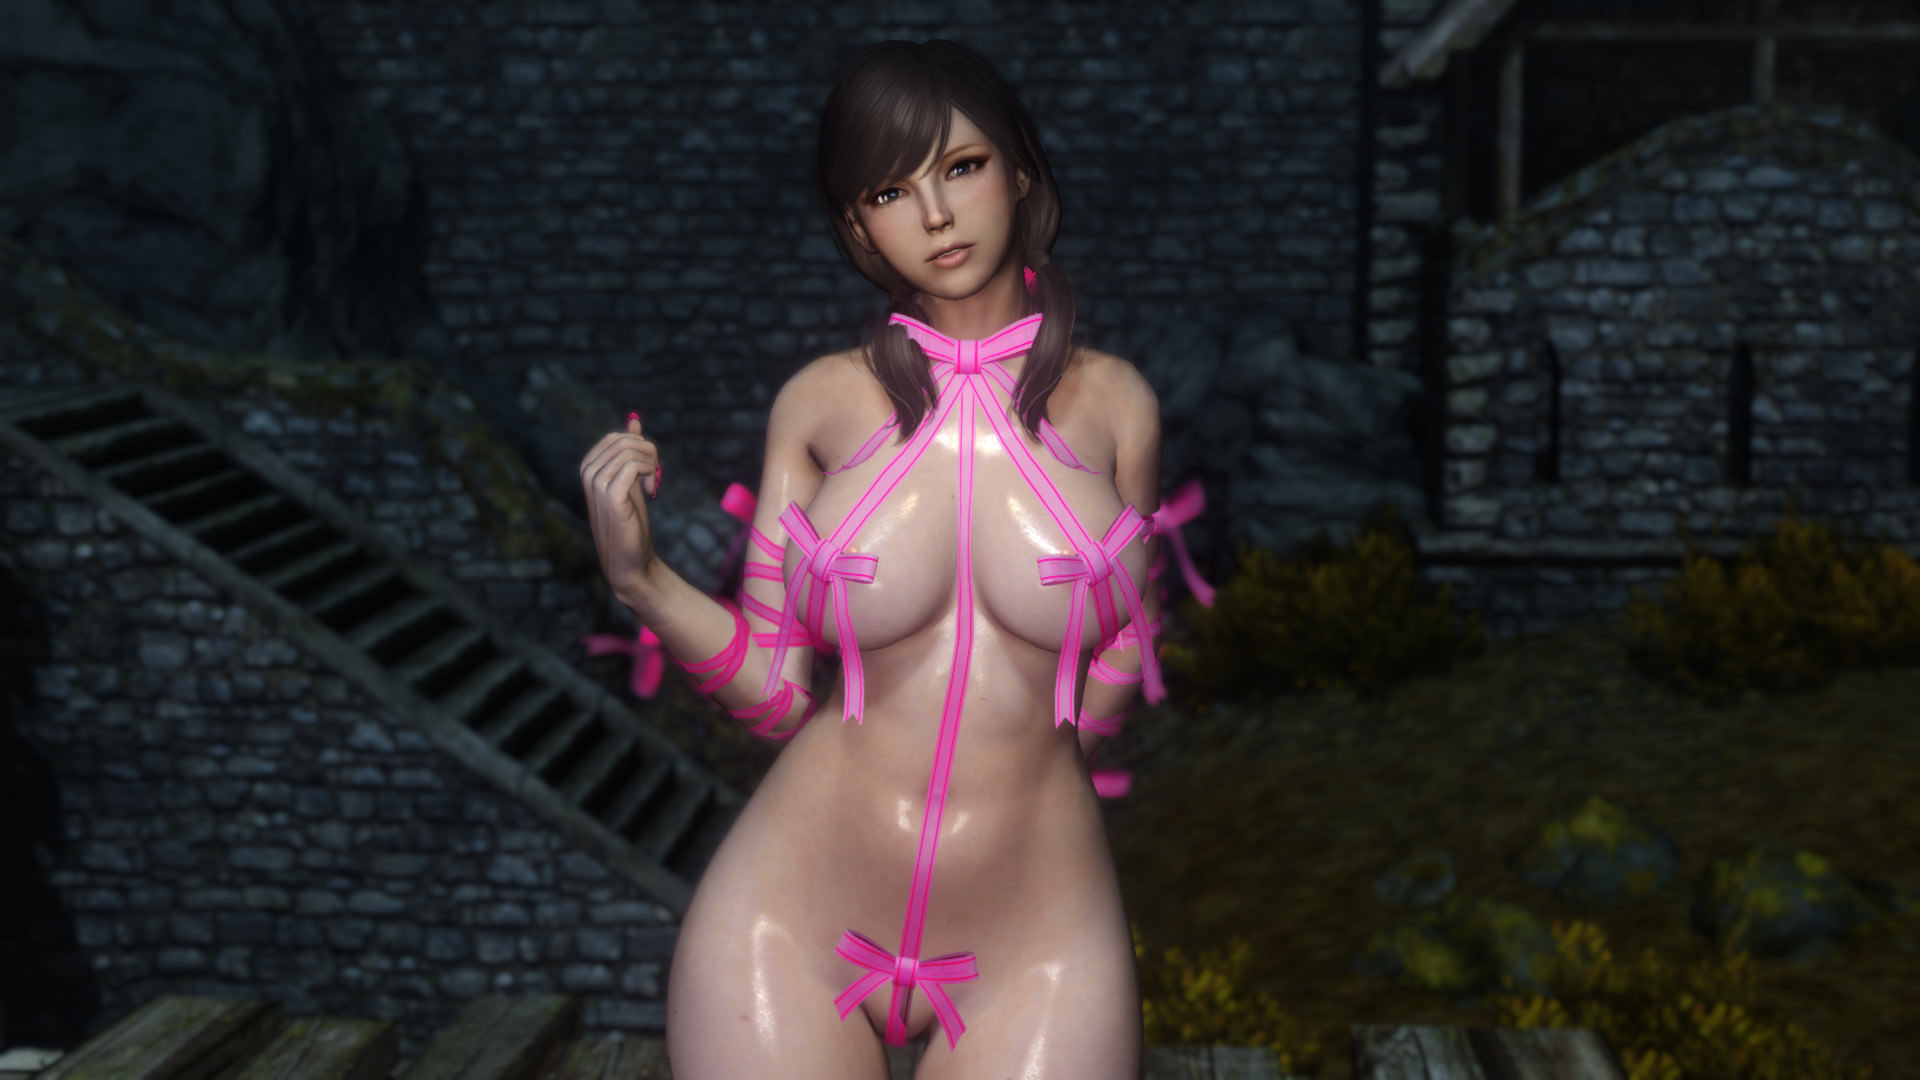 Just take a look at great erotic photos in High Quality - Sexy skyrim armor